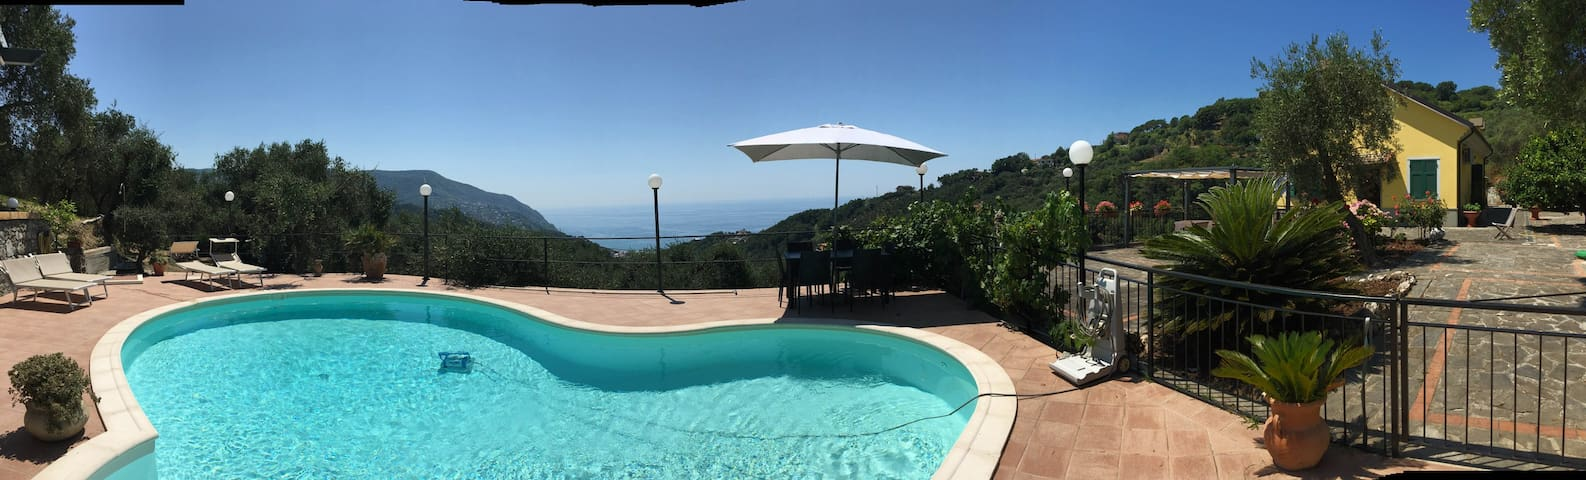 beb : seaview and pool - Moneglia